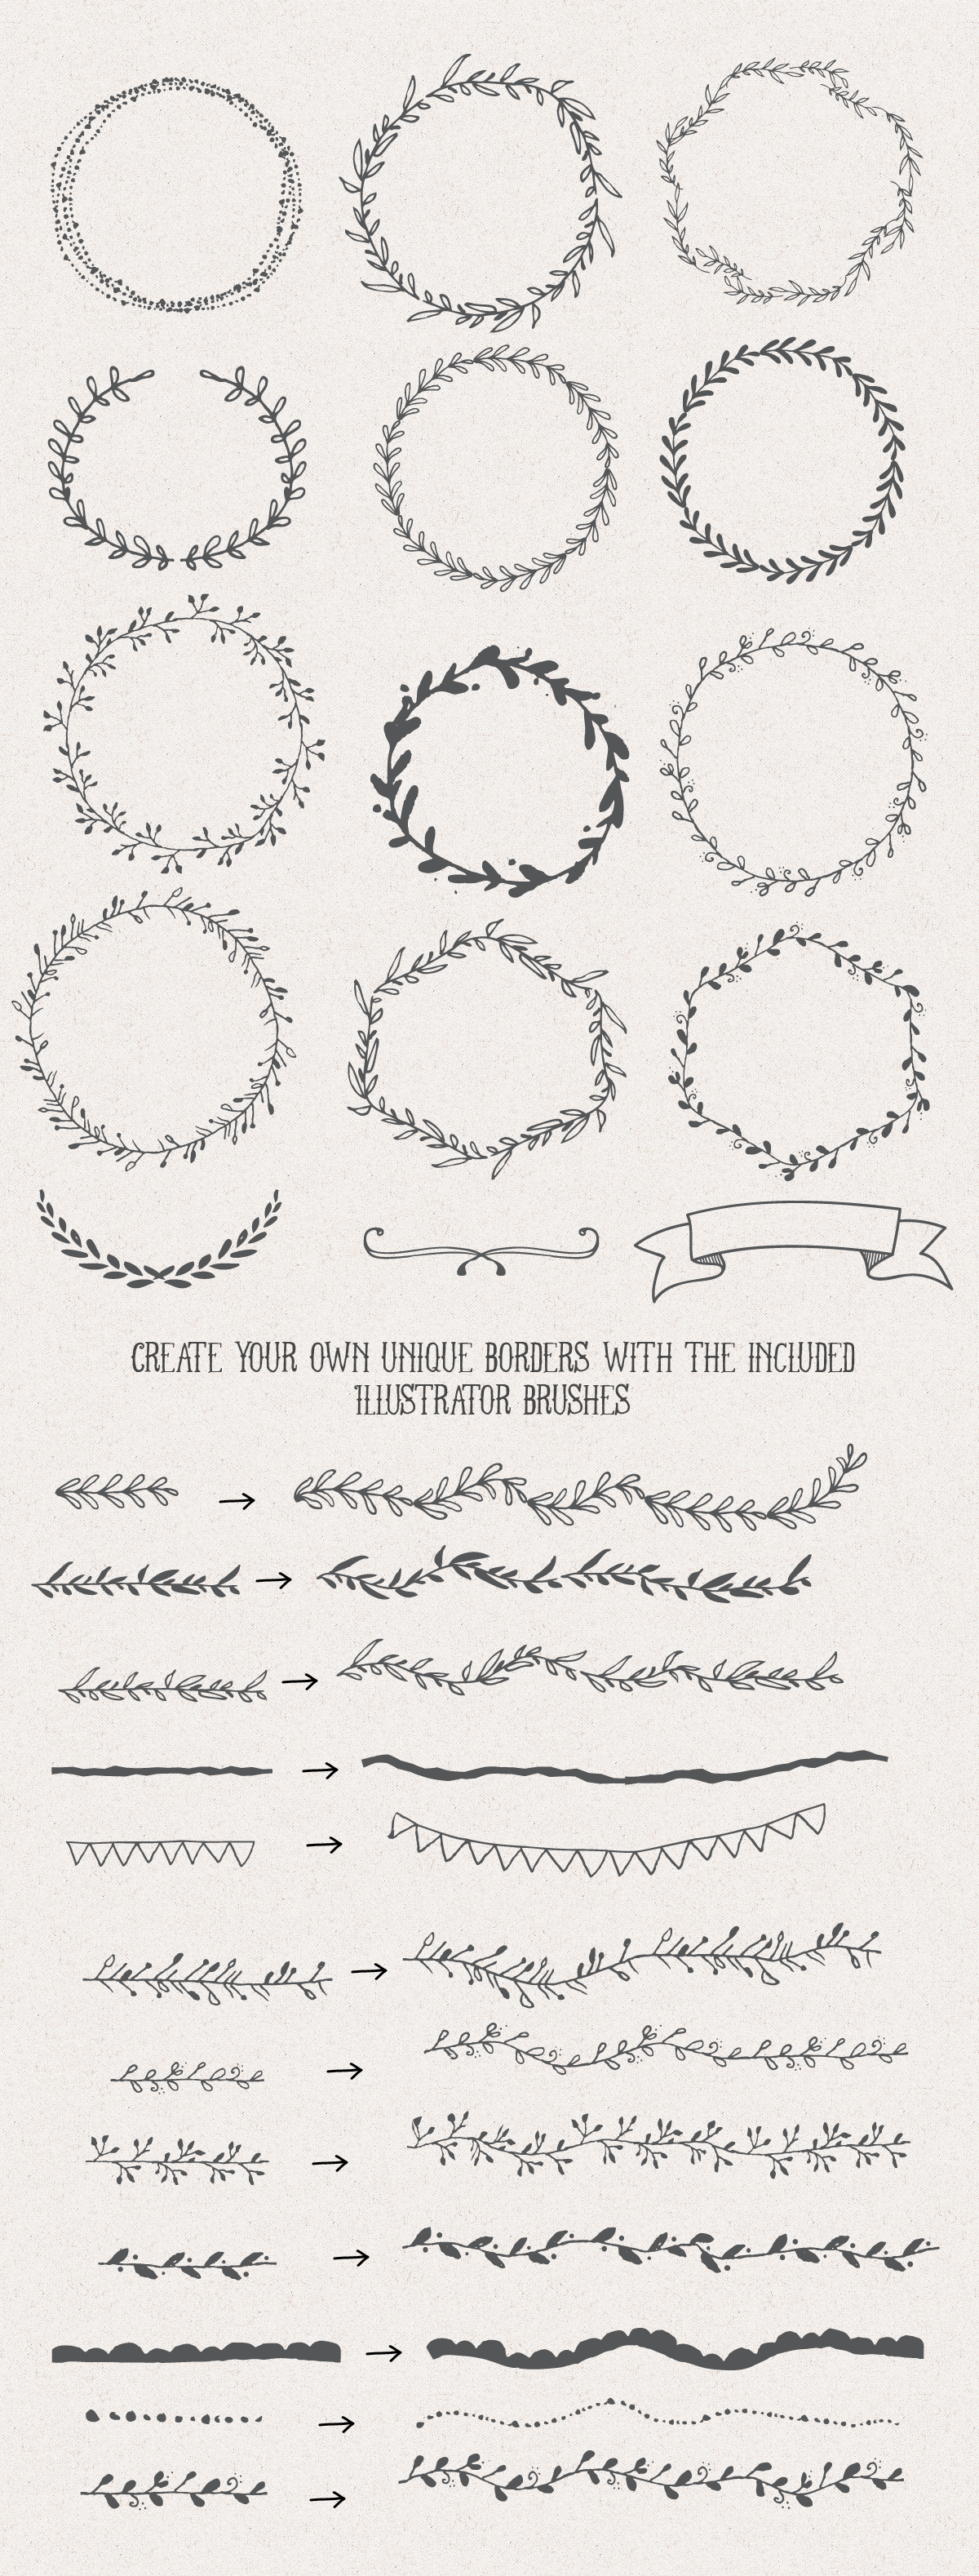 The handsketched designers kit designers creative and doodles